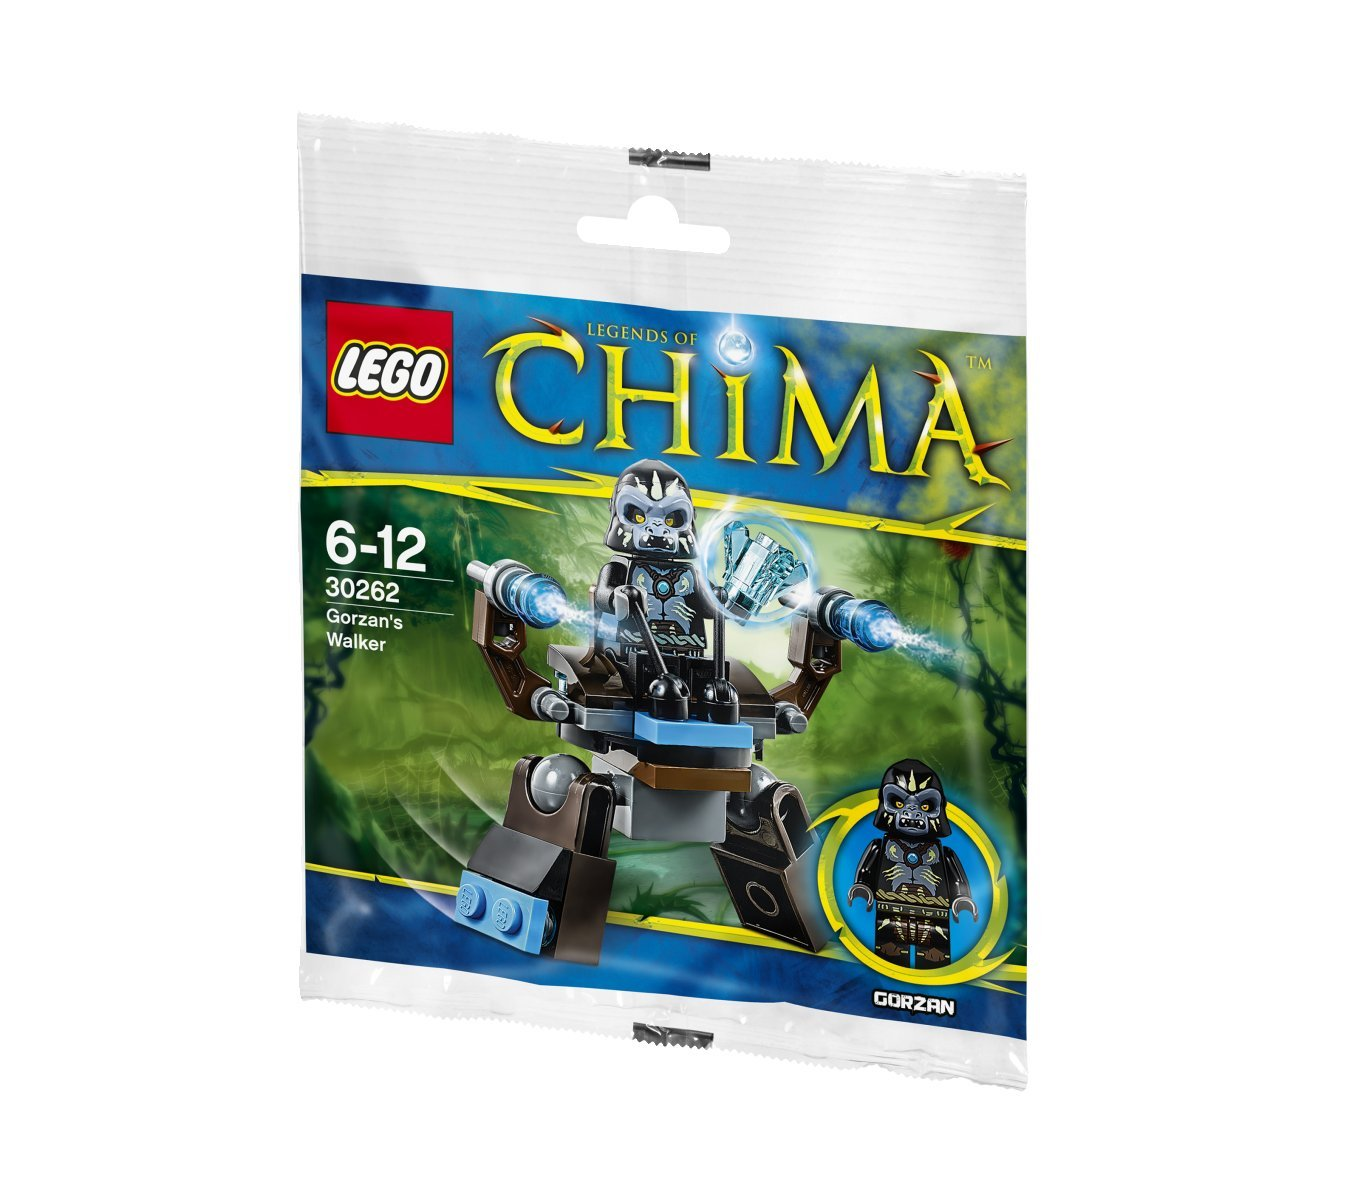 Amazon chima party supplies - Amazon Com Lego Legends Of Chima Gorzan S Walker 30262 Bagged Set Toys Games